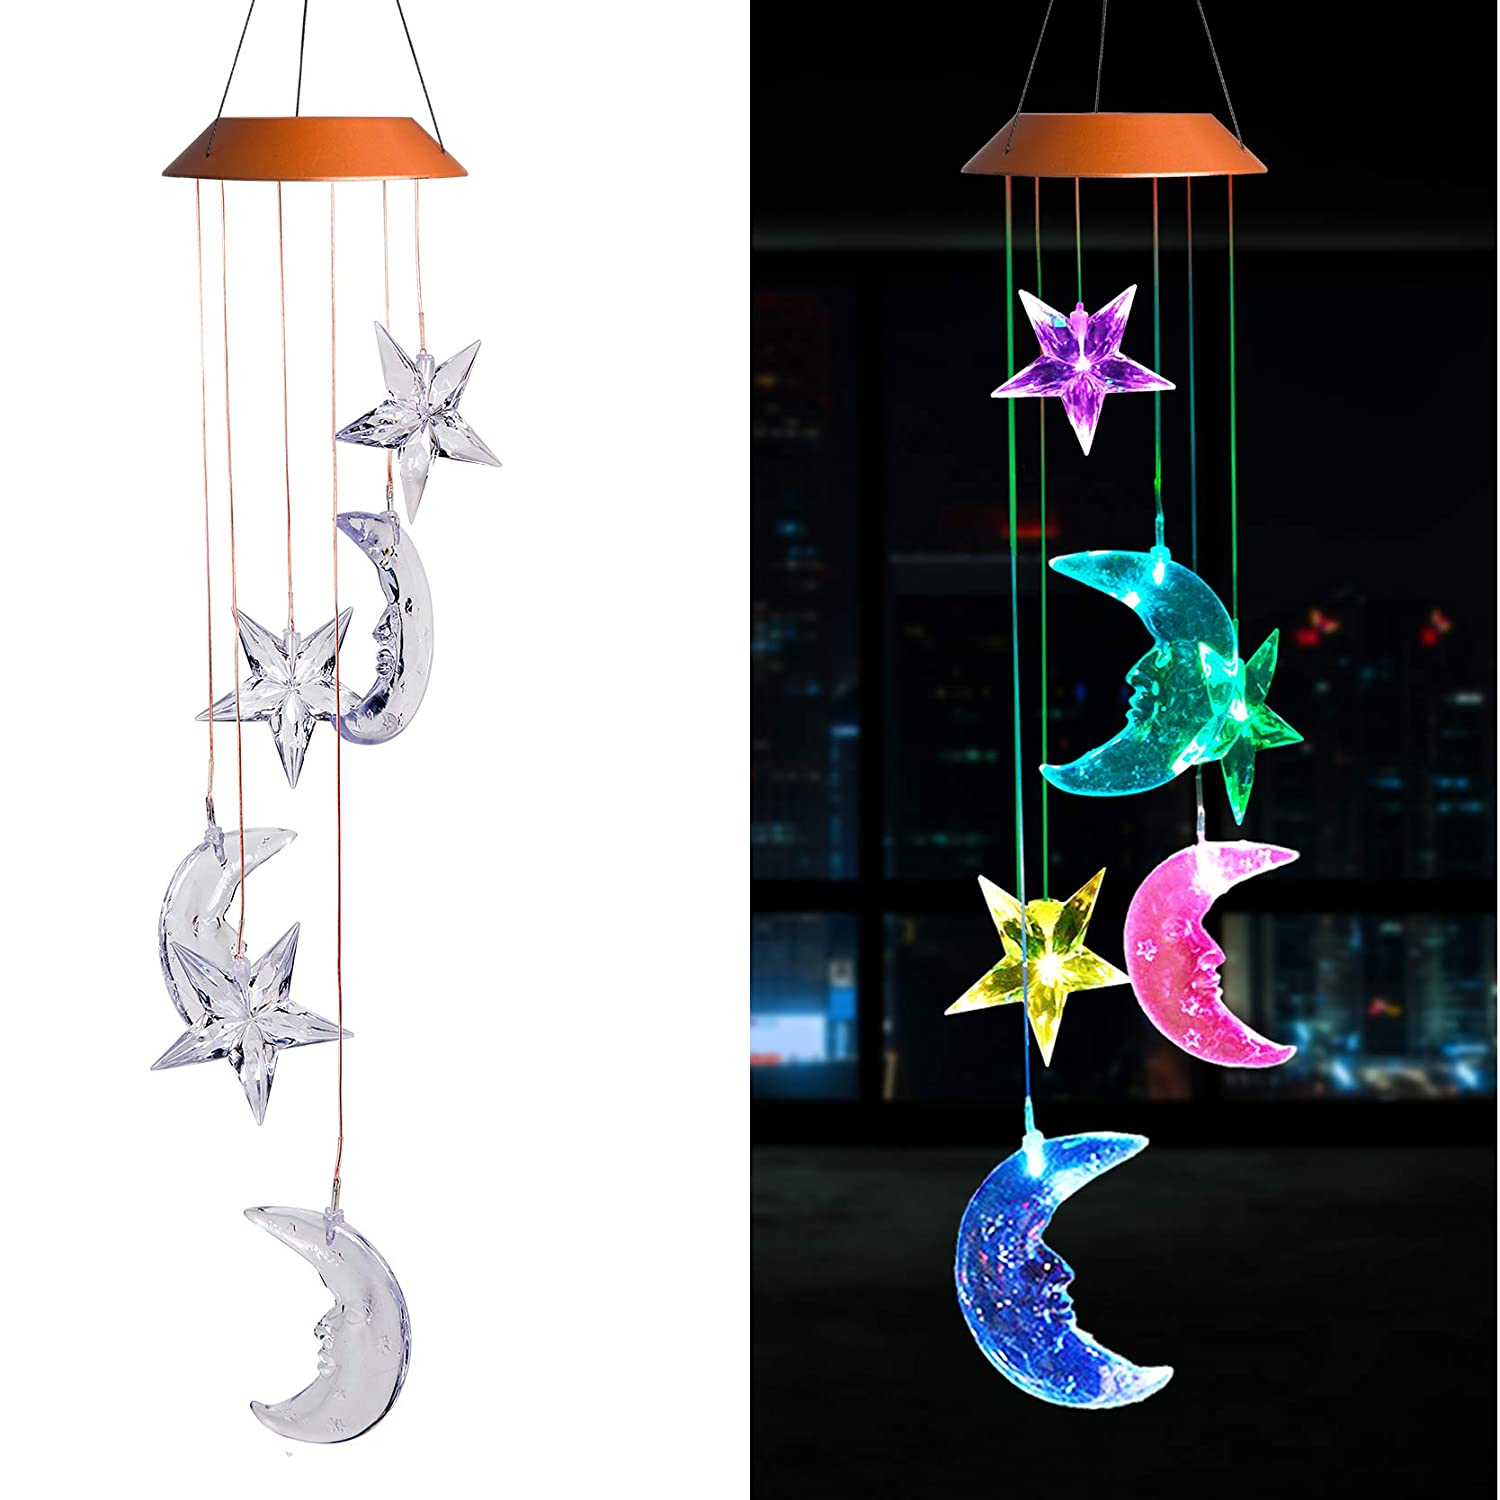 xxschy LED Solar Moon and Stars Wind Chimes Outdoor - Waterproof LED Changing Light Color Wind Chime, Six Moon and Stars Wind Chimes for Home, Party, Night Garden Decoration